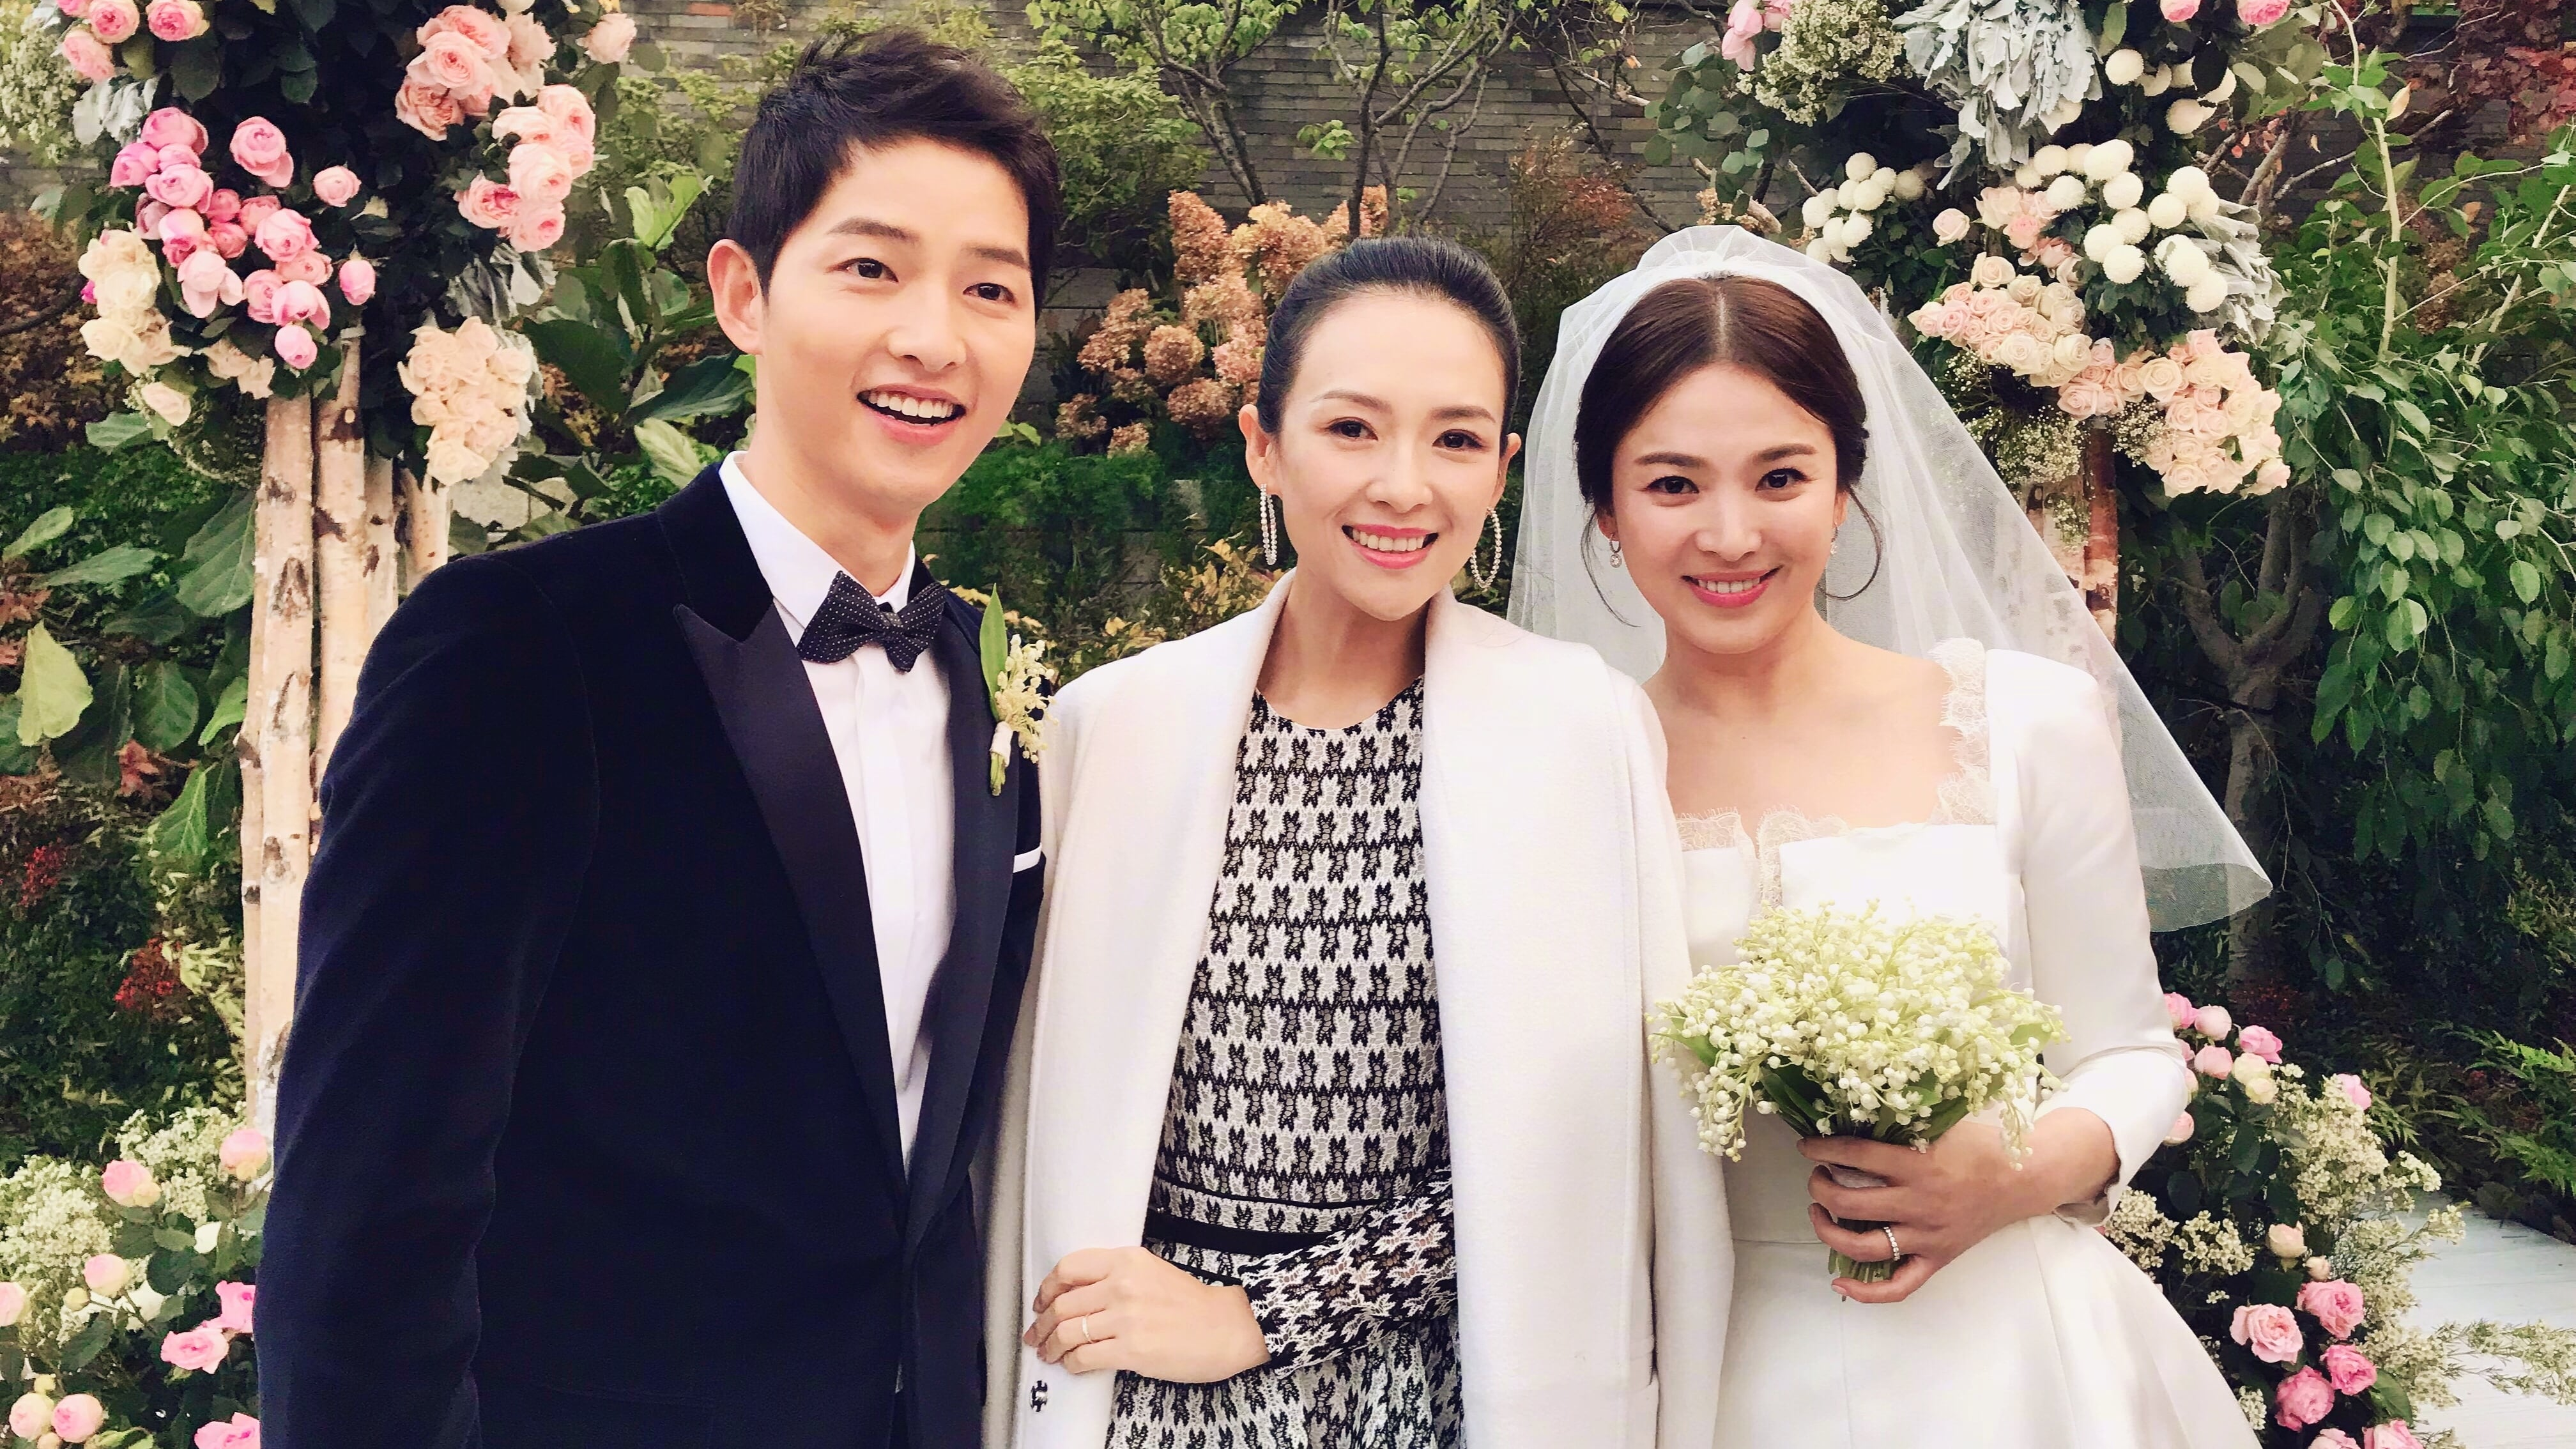 Zhang Ziyi Shares Photos From Song Hye Kyo And Song Joong Ki's Wedding